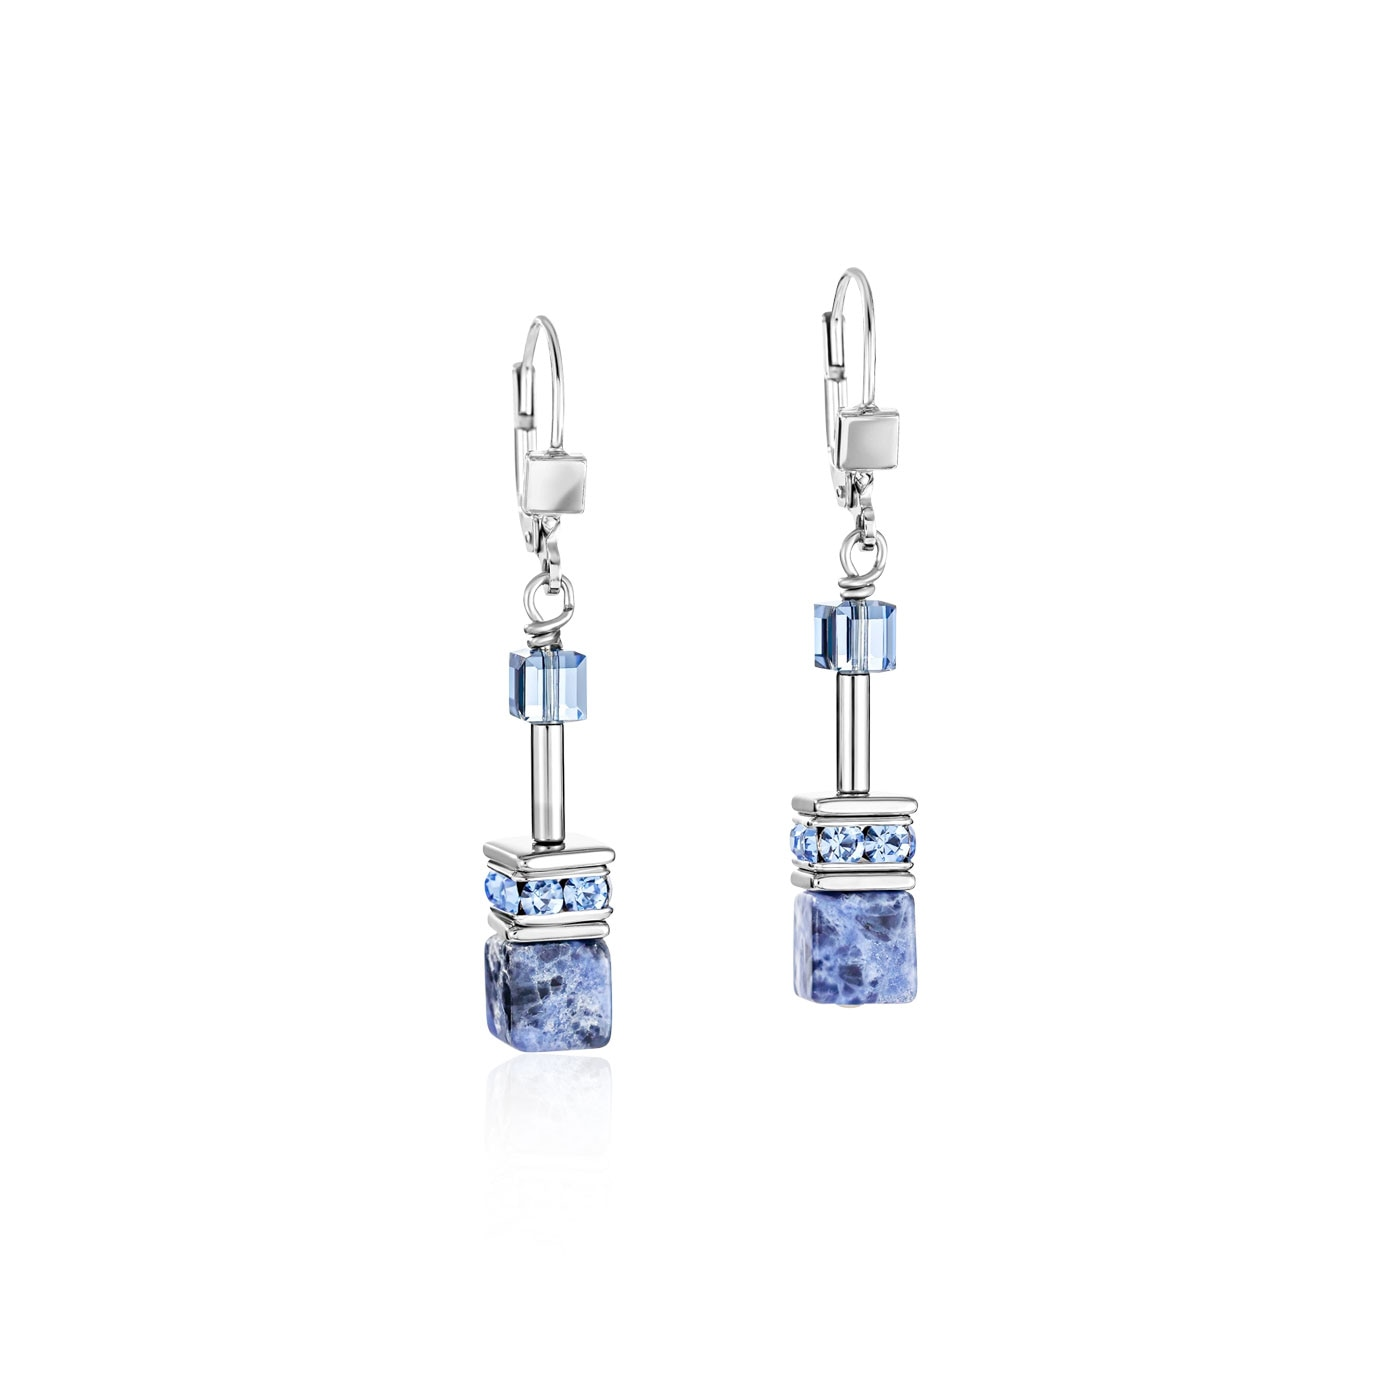 GeoCUBE Earrings sodalite & haematite blue